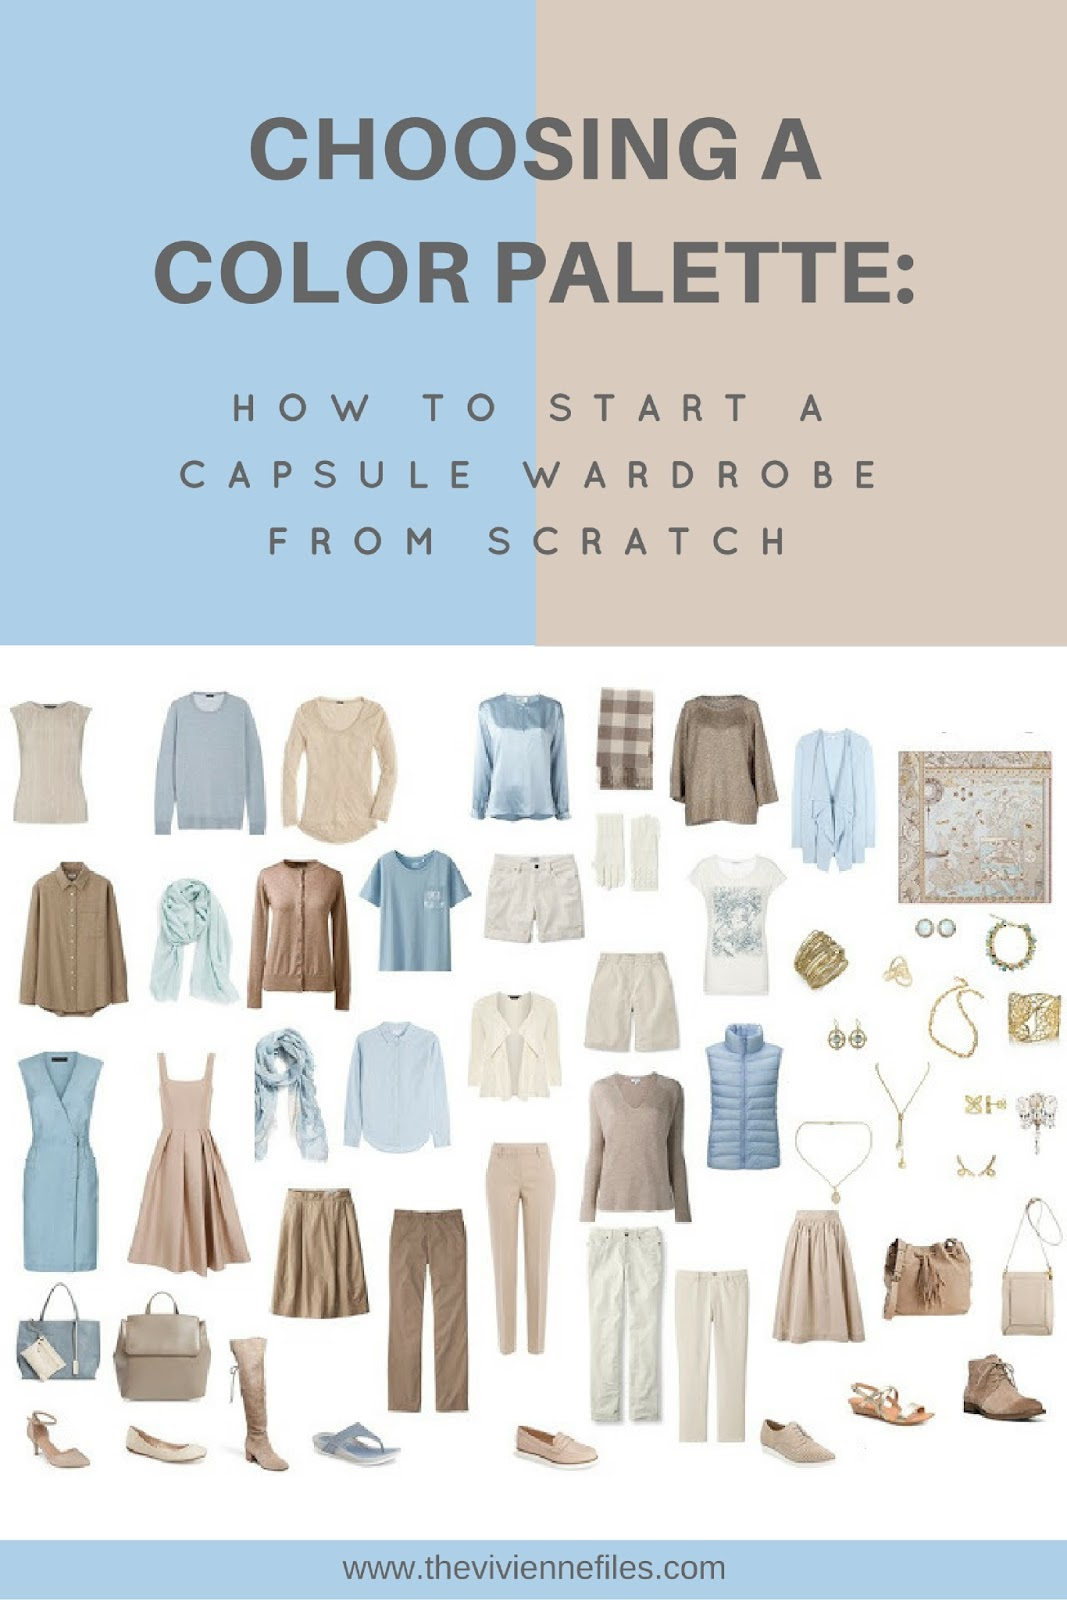 Capsule Wardrobe: How To Build A Capsule Wardrobe From Scratch: Choosing